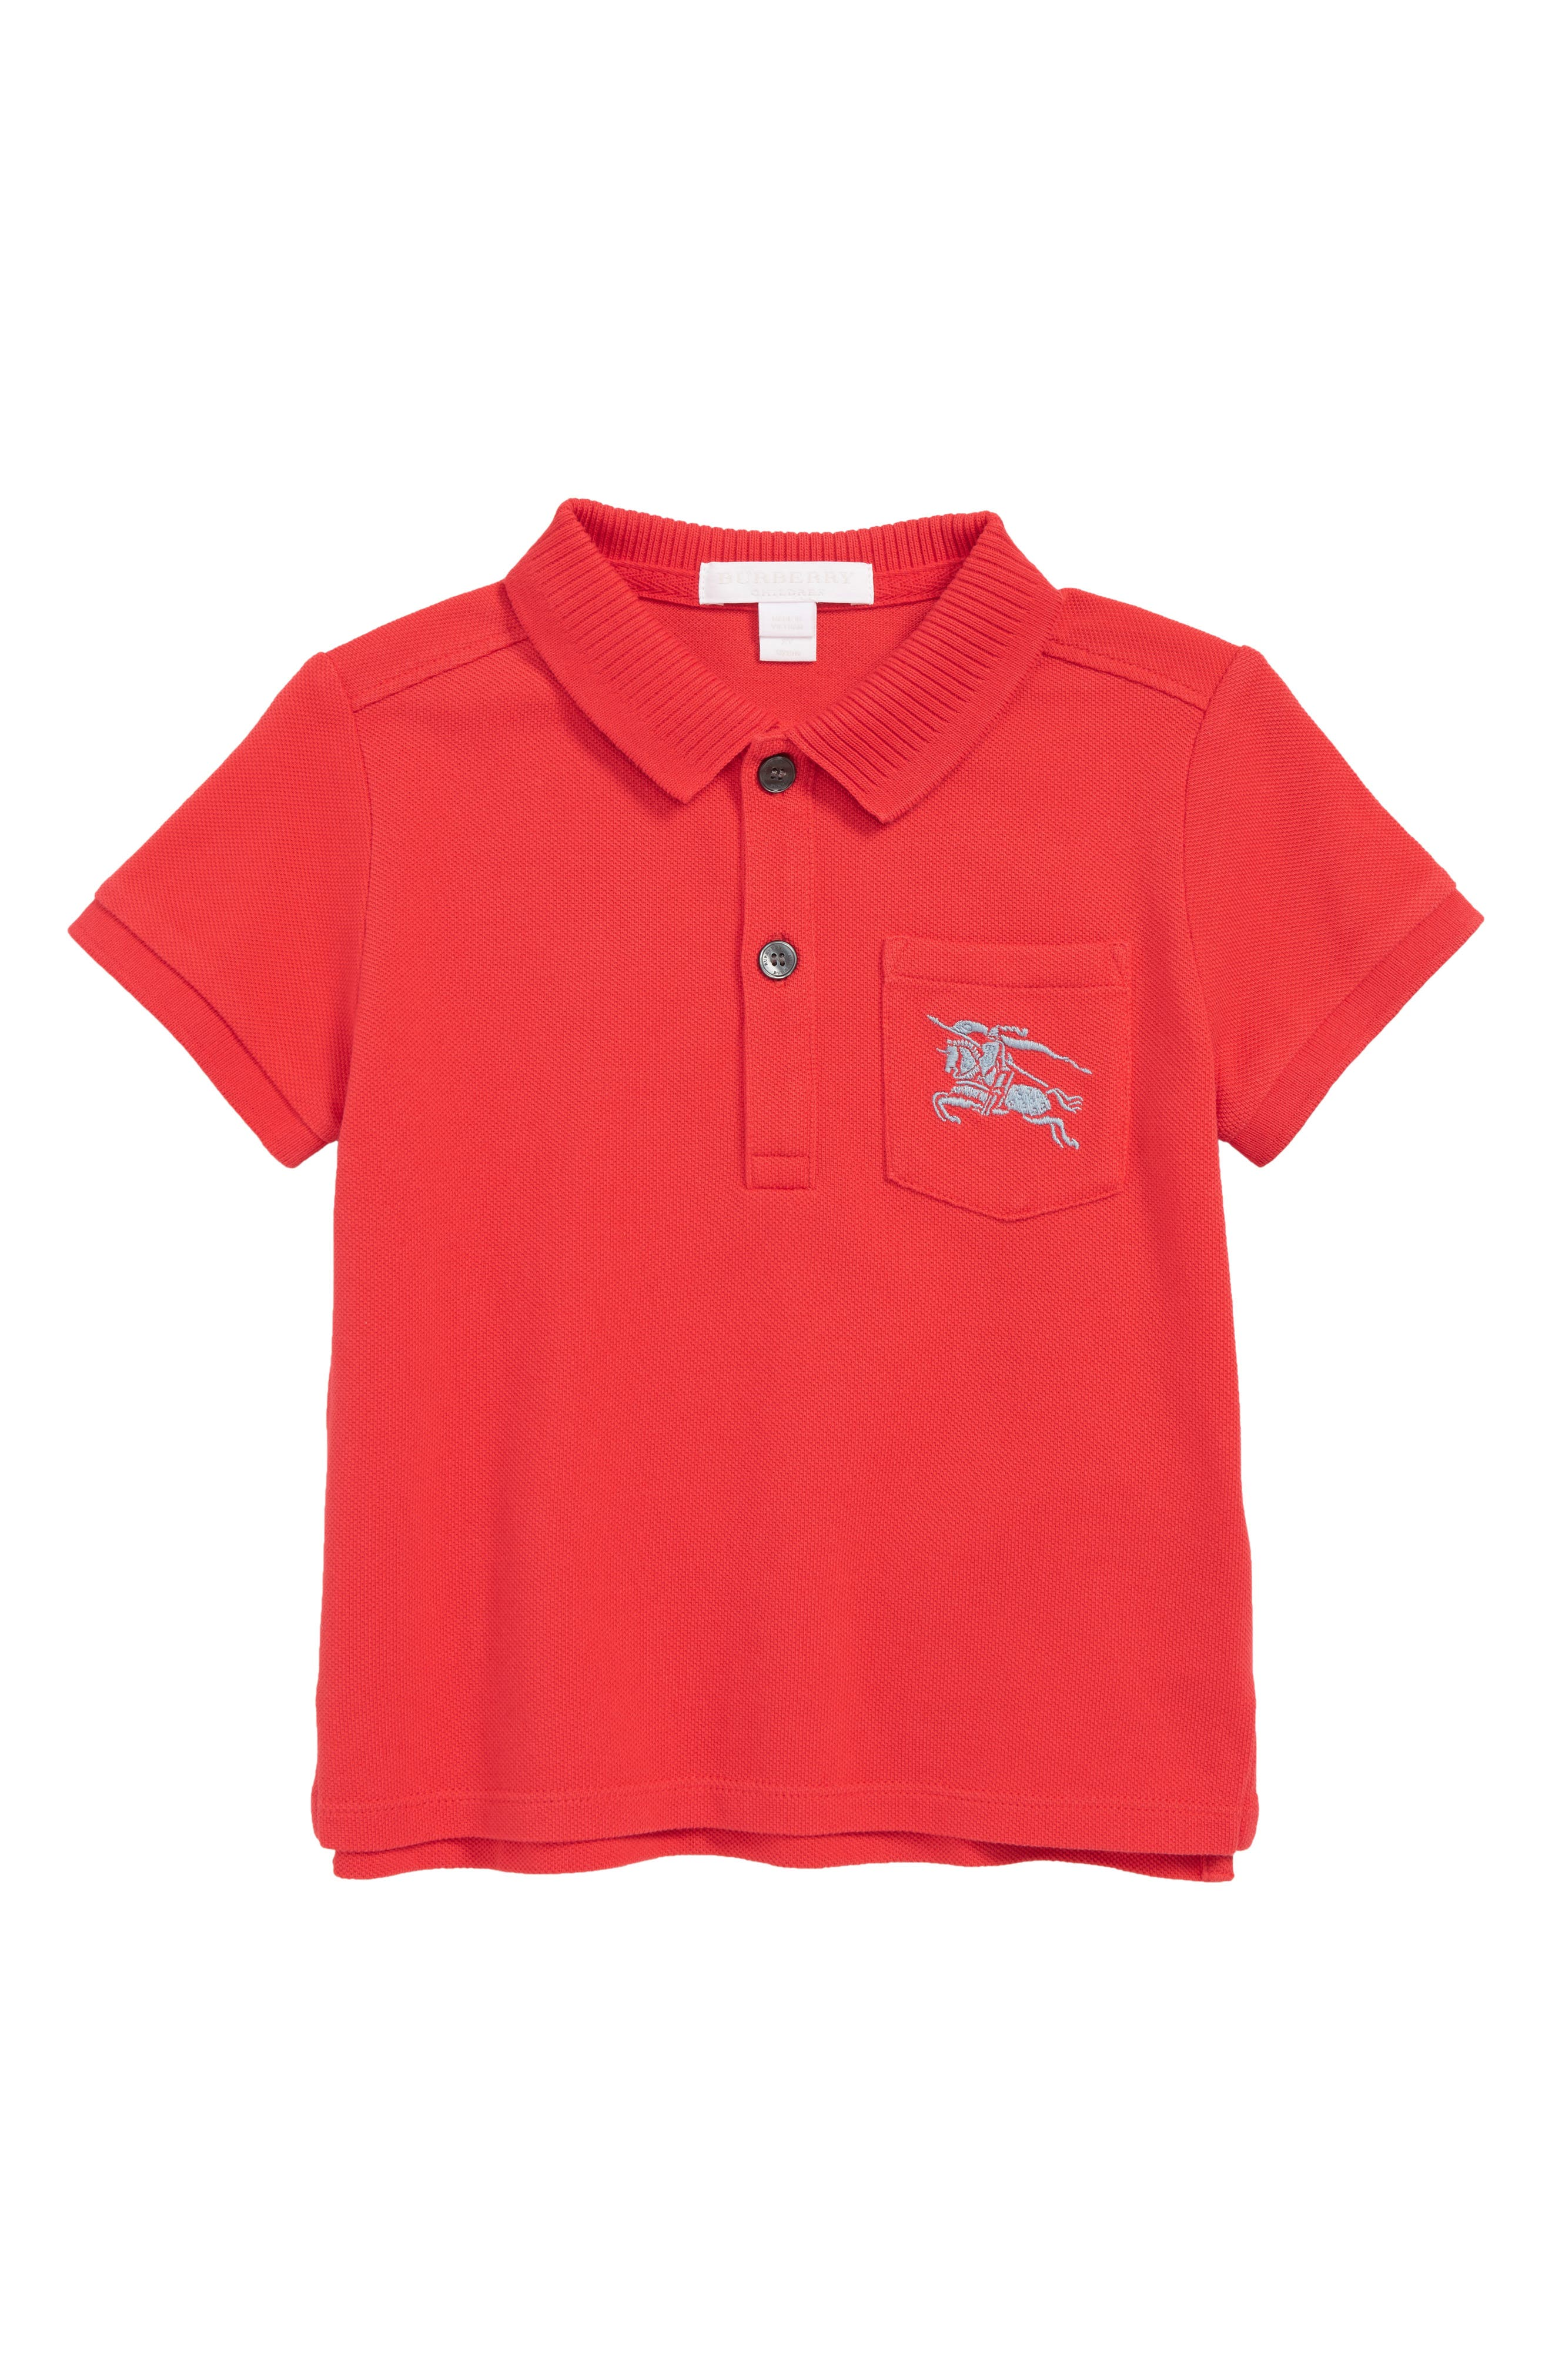 BURBERRY,                             Grant Polo,                             Main thumbnail 1, color,                             BRIGHT RED